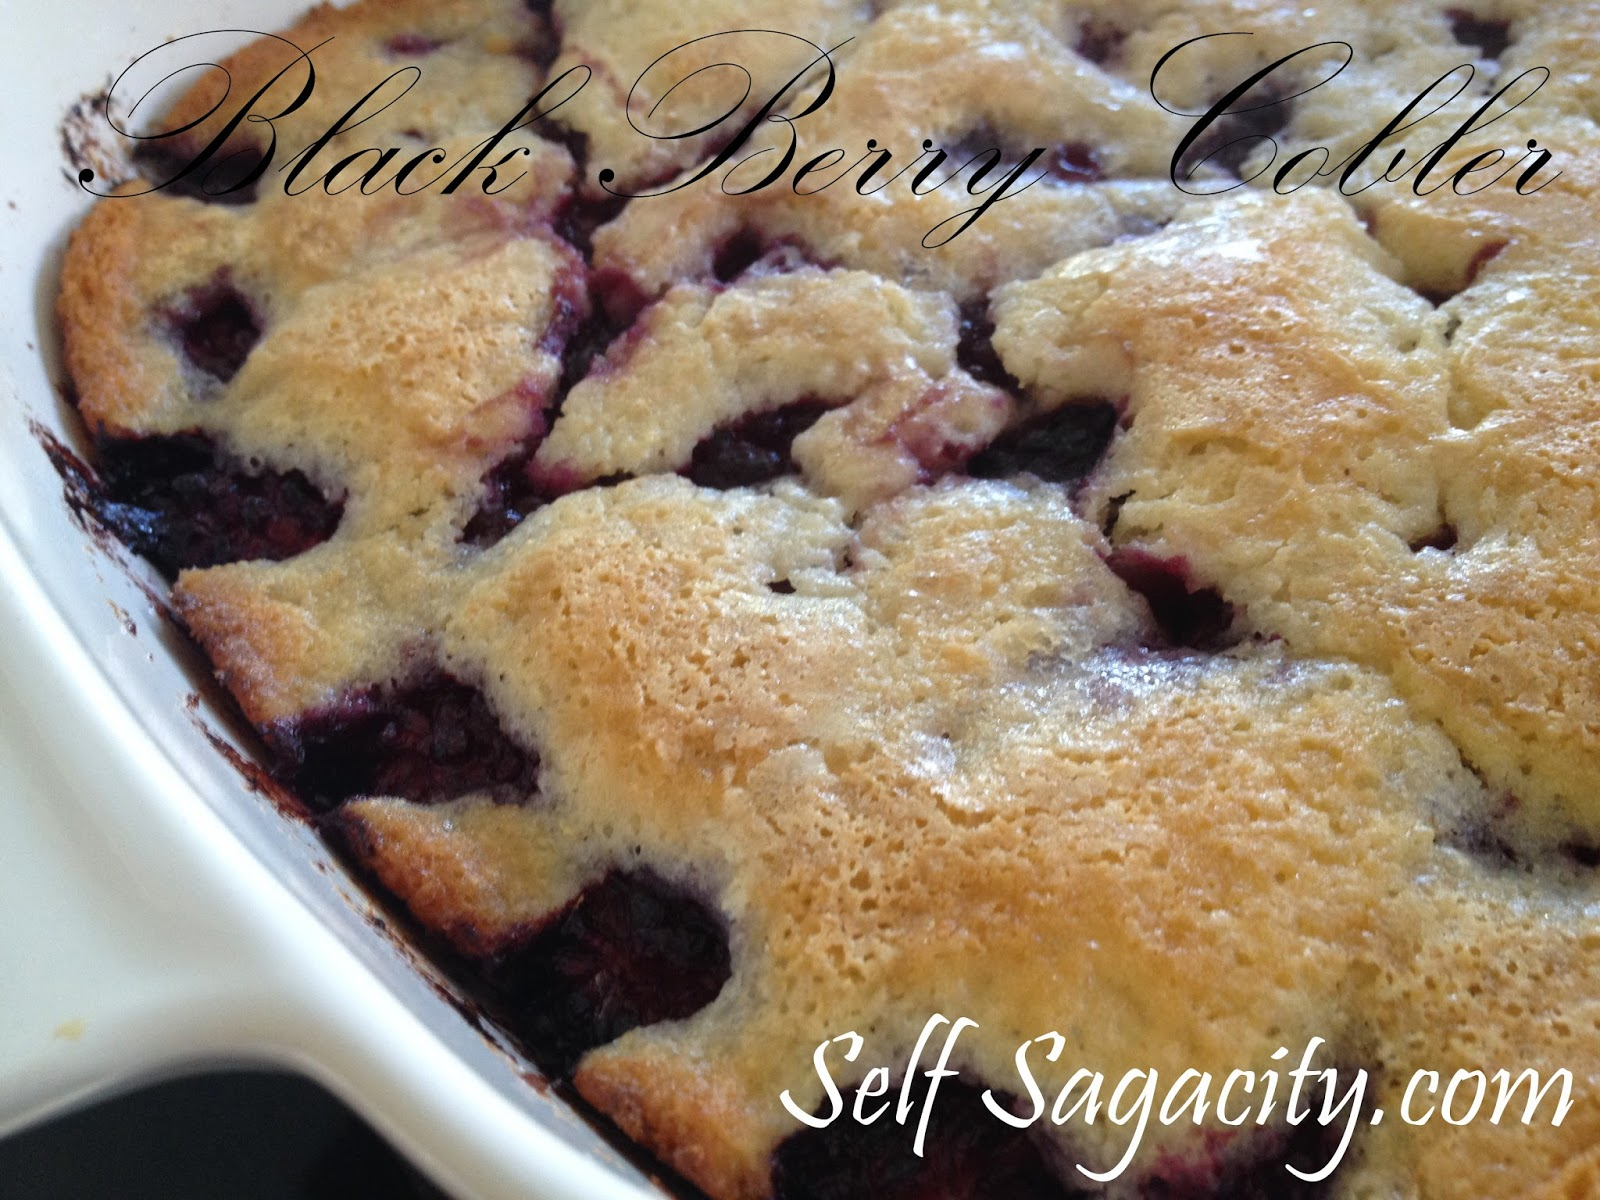 Blackberry cobbler in a cornware baking dish